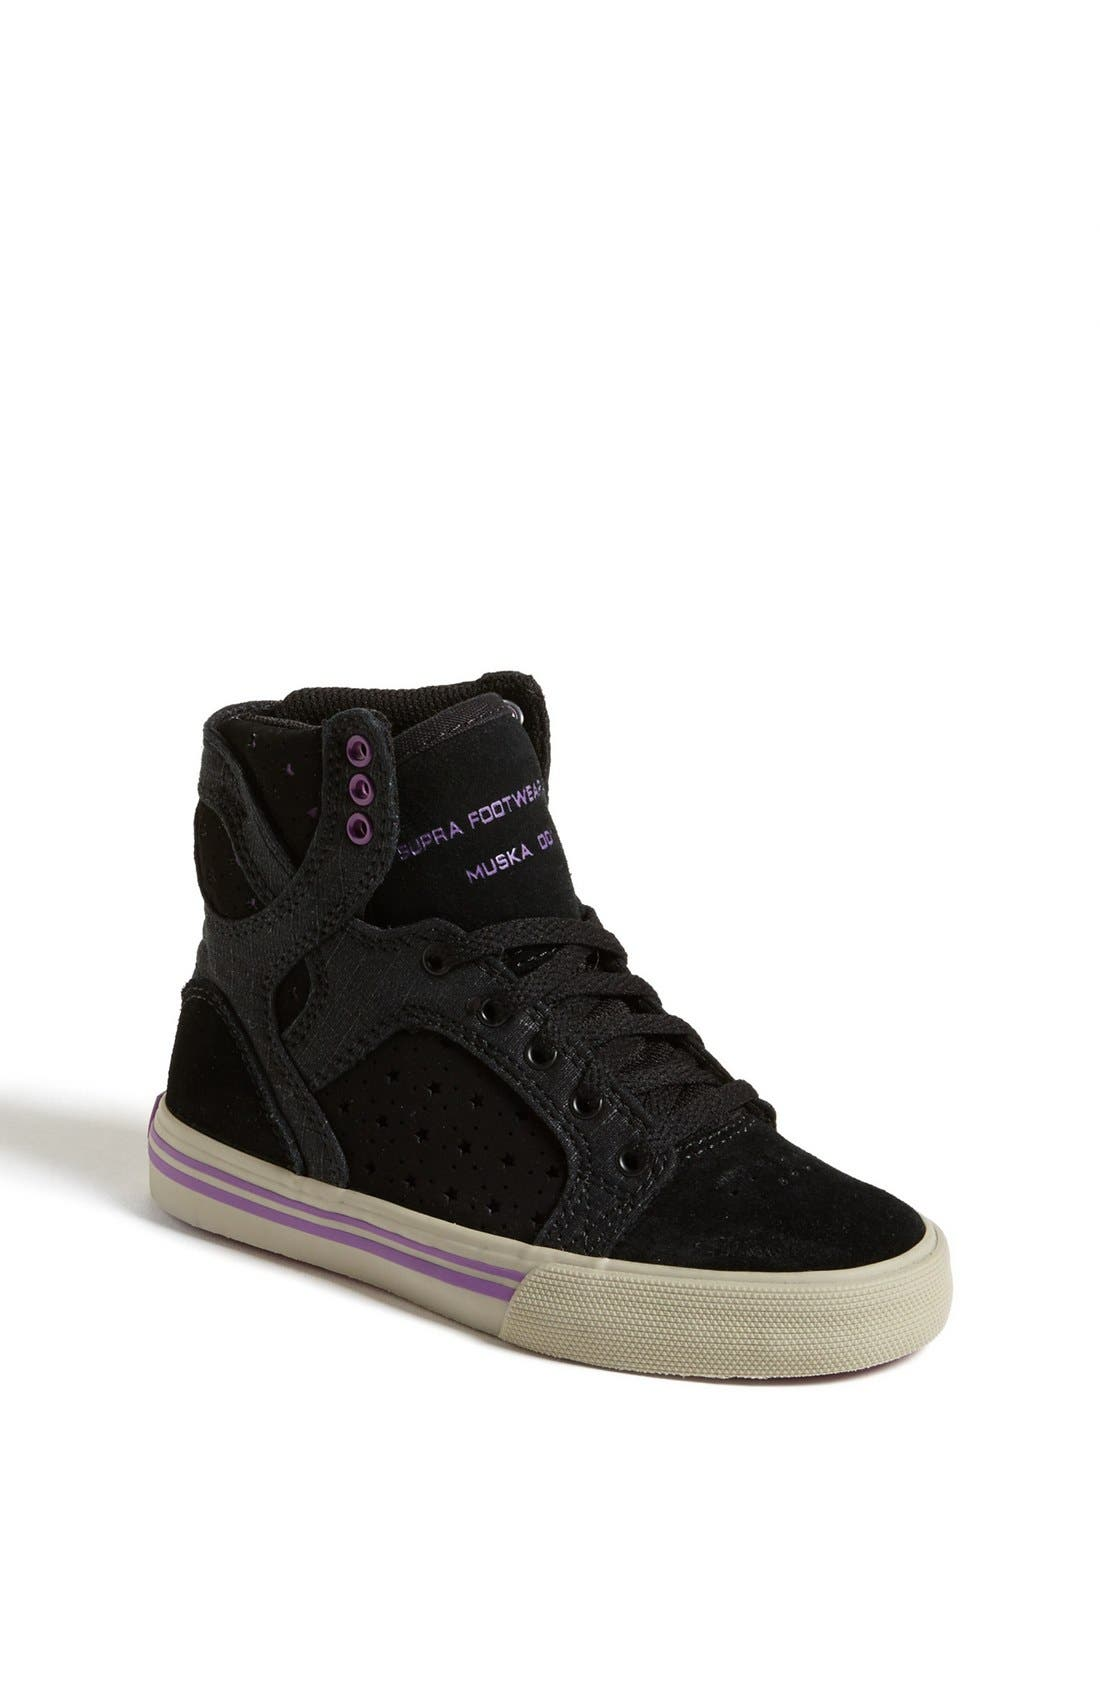 Main Image - Supra 'Skytop' Sneaker (Toddler, Little Kid & Big Kid)